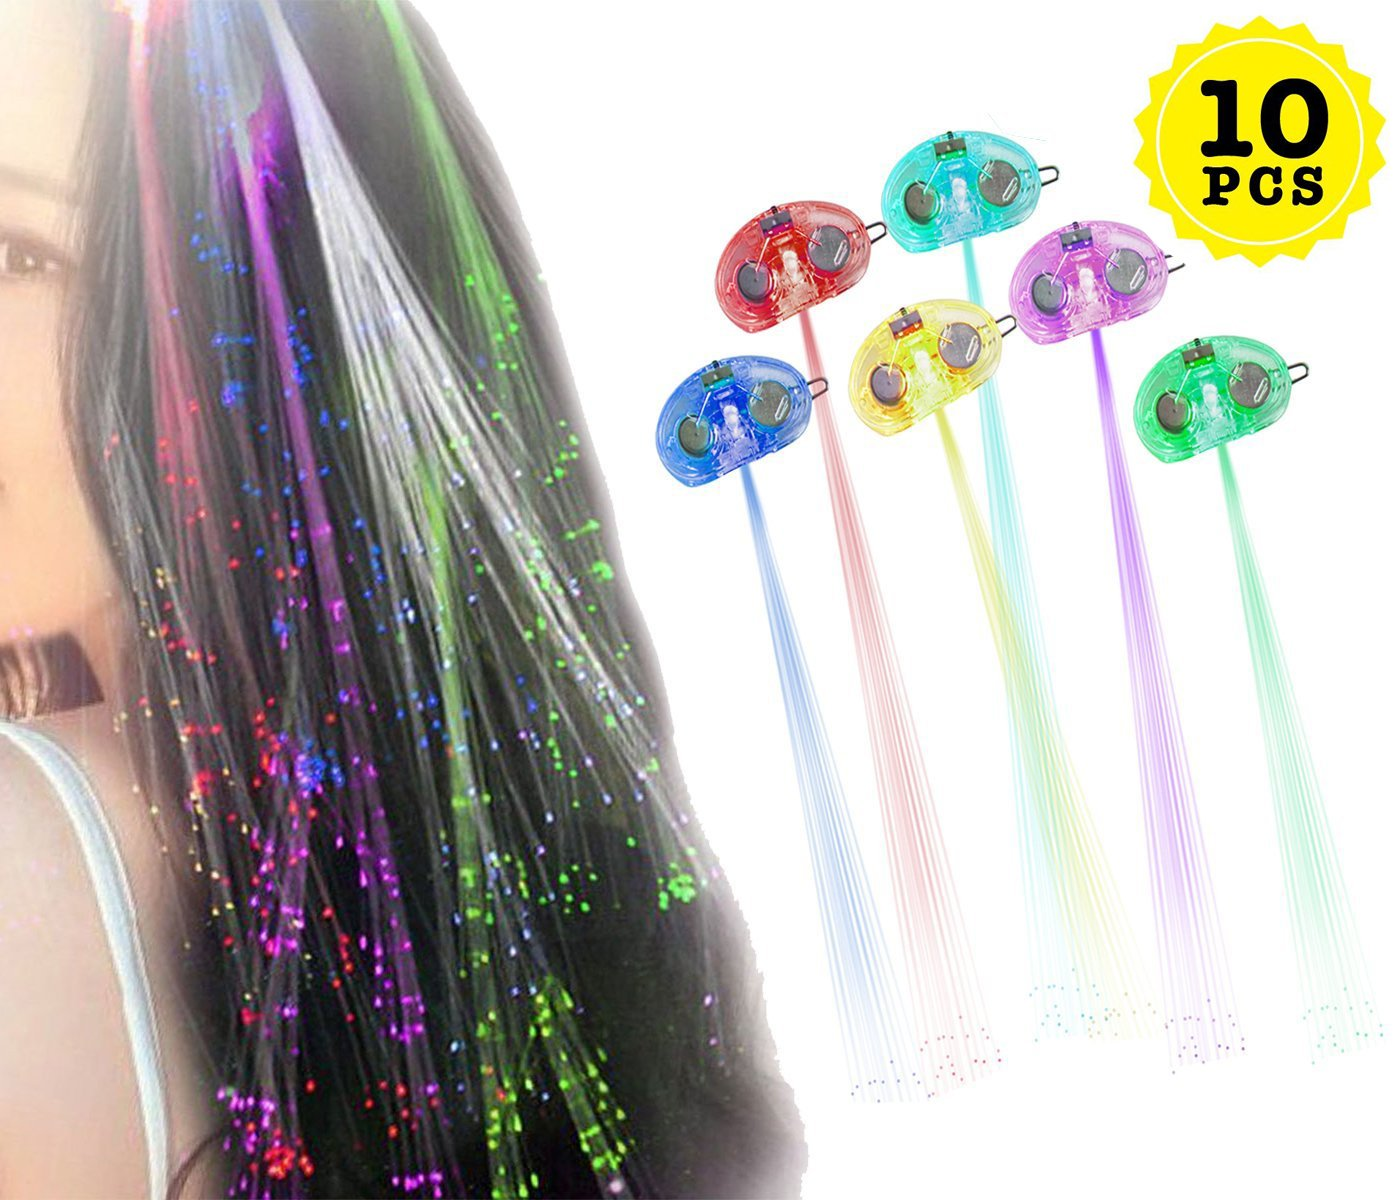 Zinnor Light Up Toys with Flashing Hair Fiber Optic Extension Barrettes.Multicolor Hair Barrette Clip Braid LED Hair Lights for Halloween Christmas Party,Bar Dancing Hairpin,Party Supplies(10 Pack)